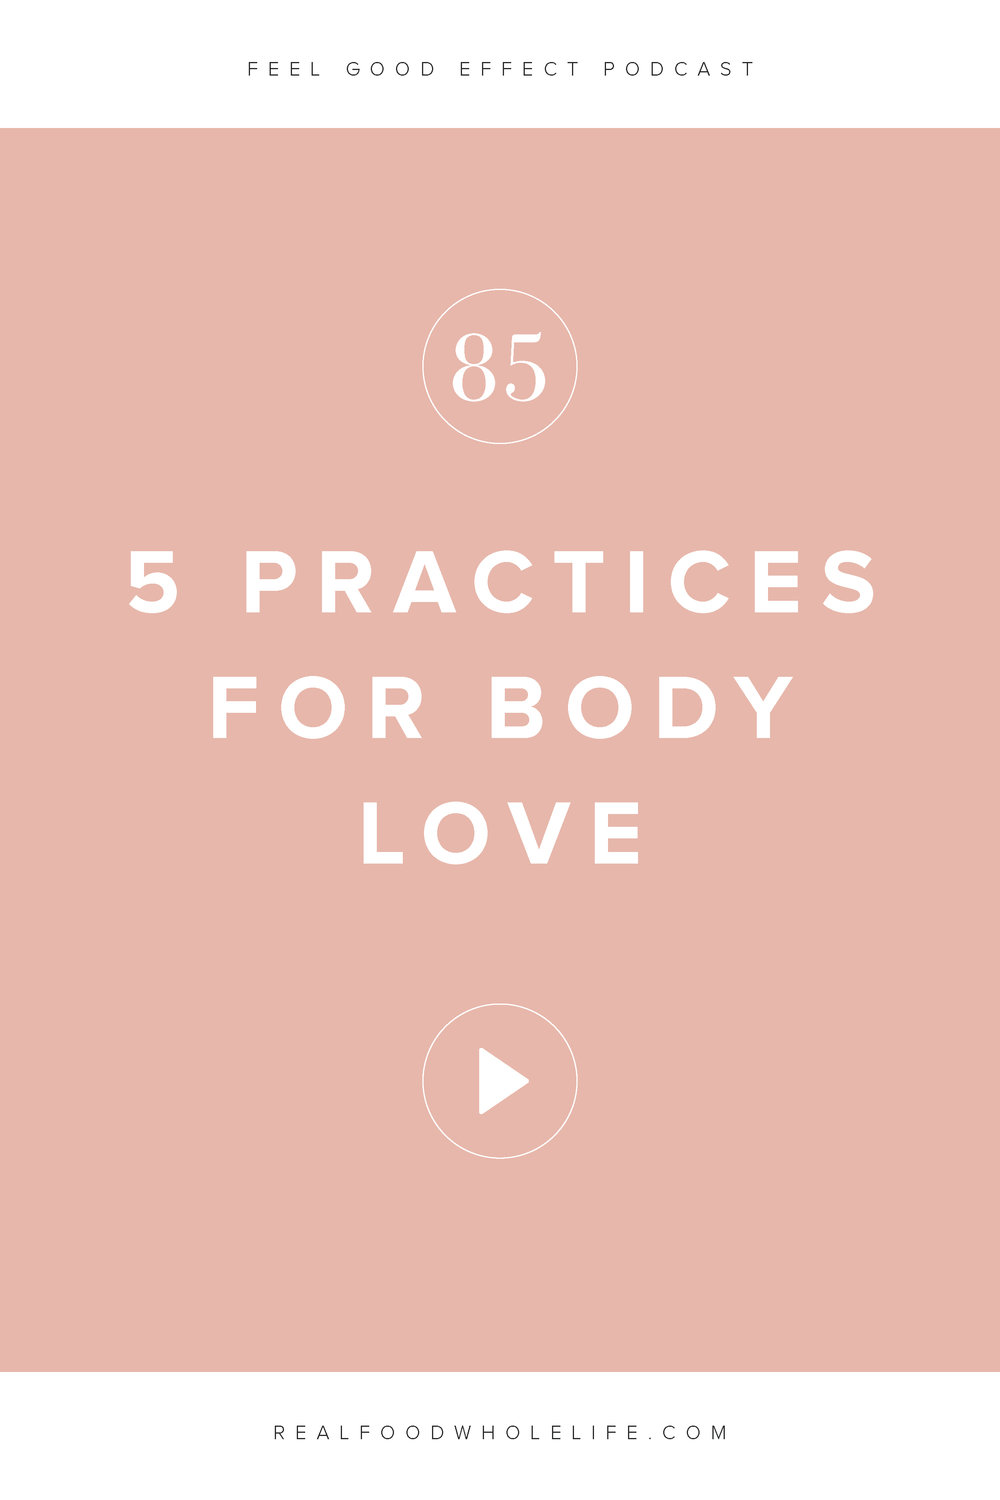 This is all about finding more body love and really getting into some tactical practices that you can do to move the needle in how you feel in your own skin. #realfoodwholelife #feelgoodeffect #podcast #wellnesspodcast #bodylove #gentle #wellness #gentleisthenewperfect #livewell #bodyacceptance